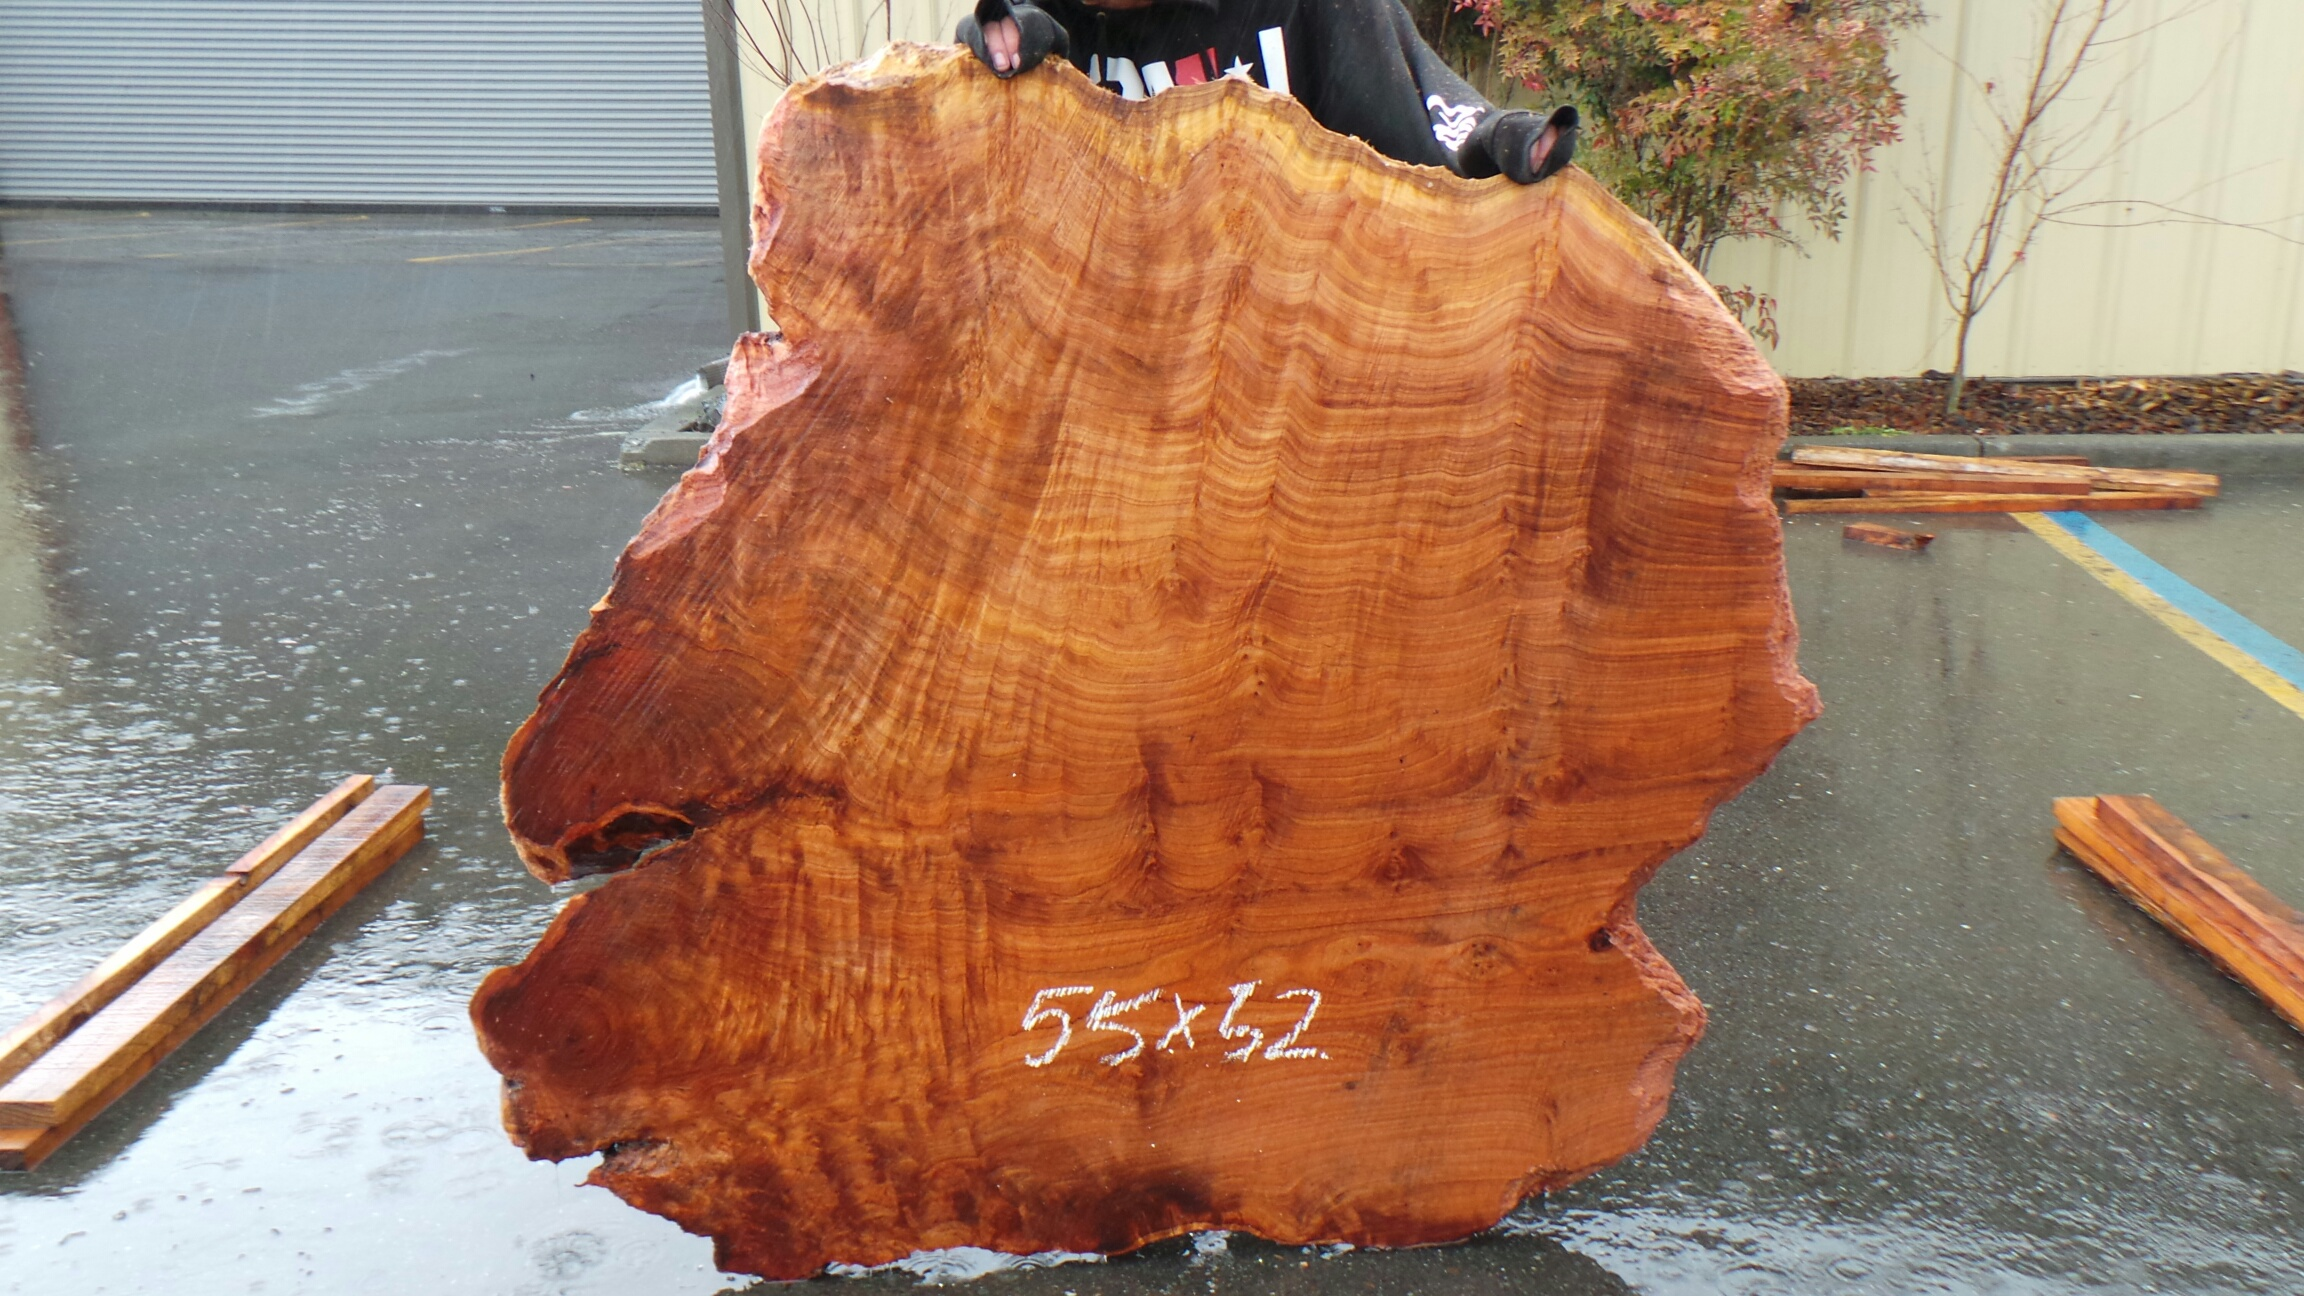 Highly Figured Redwood Slab - Curly Wood Grain and Natural Stripes